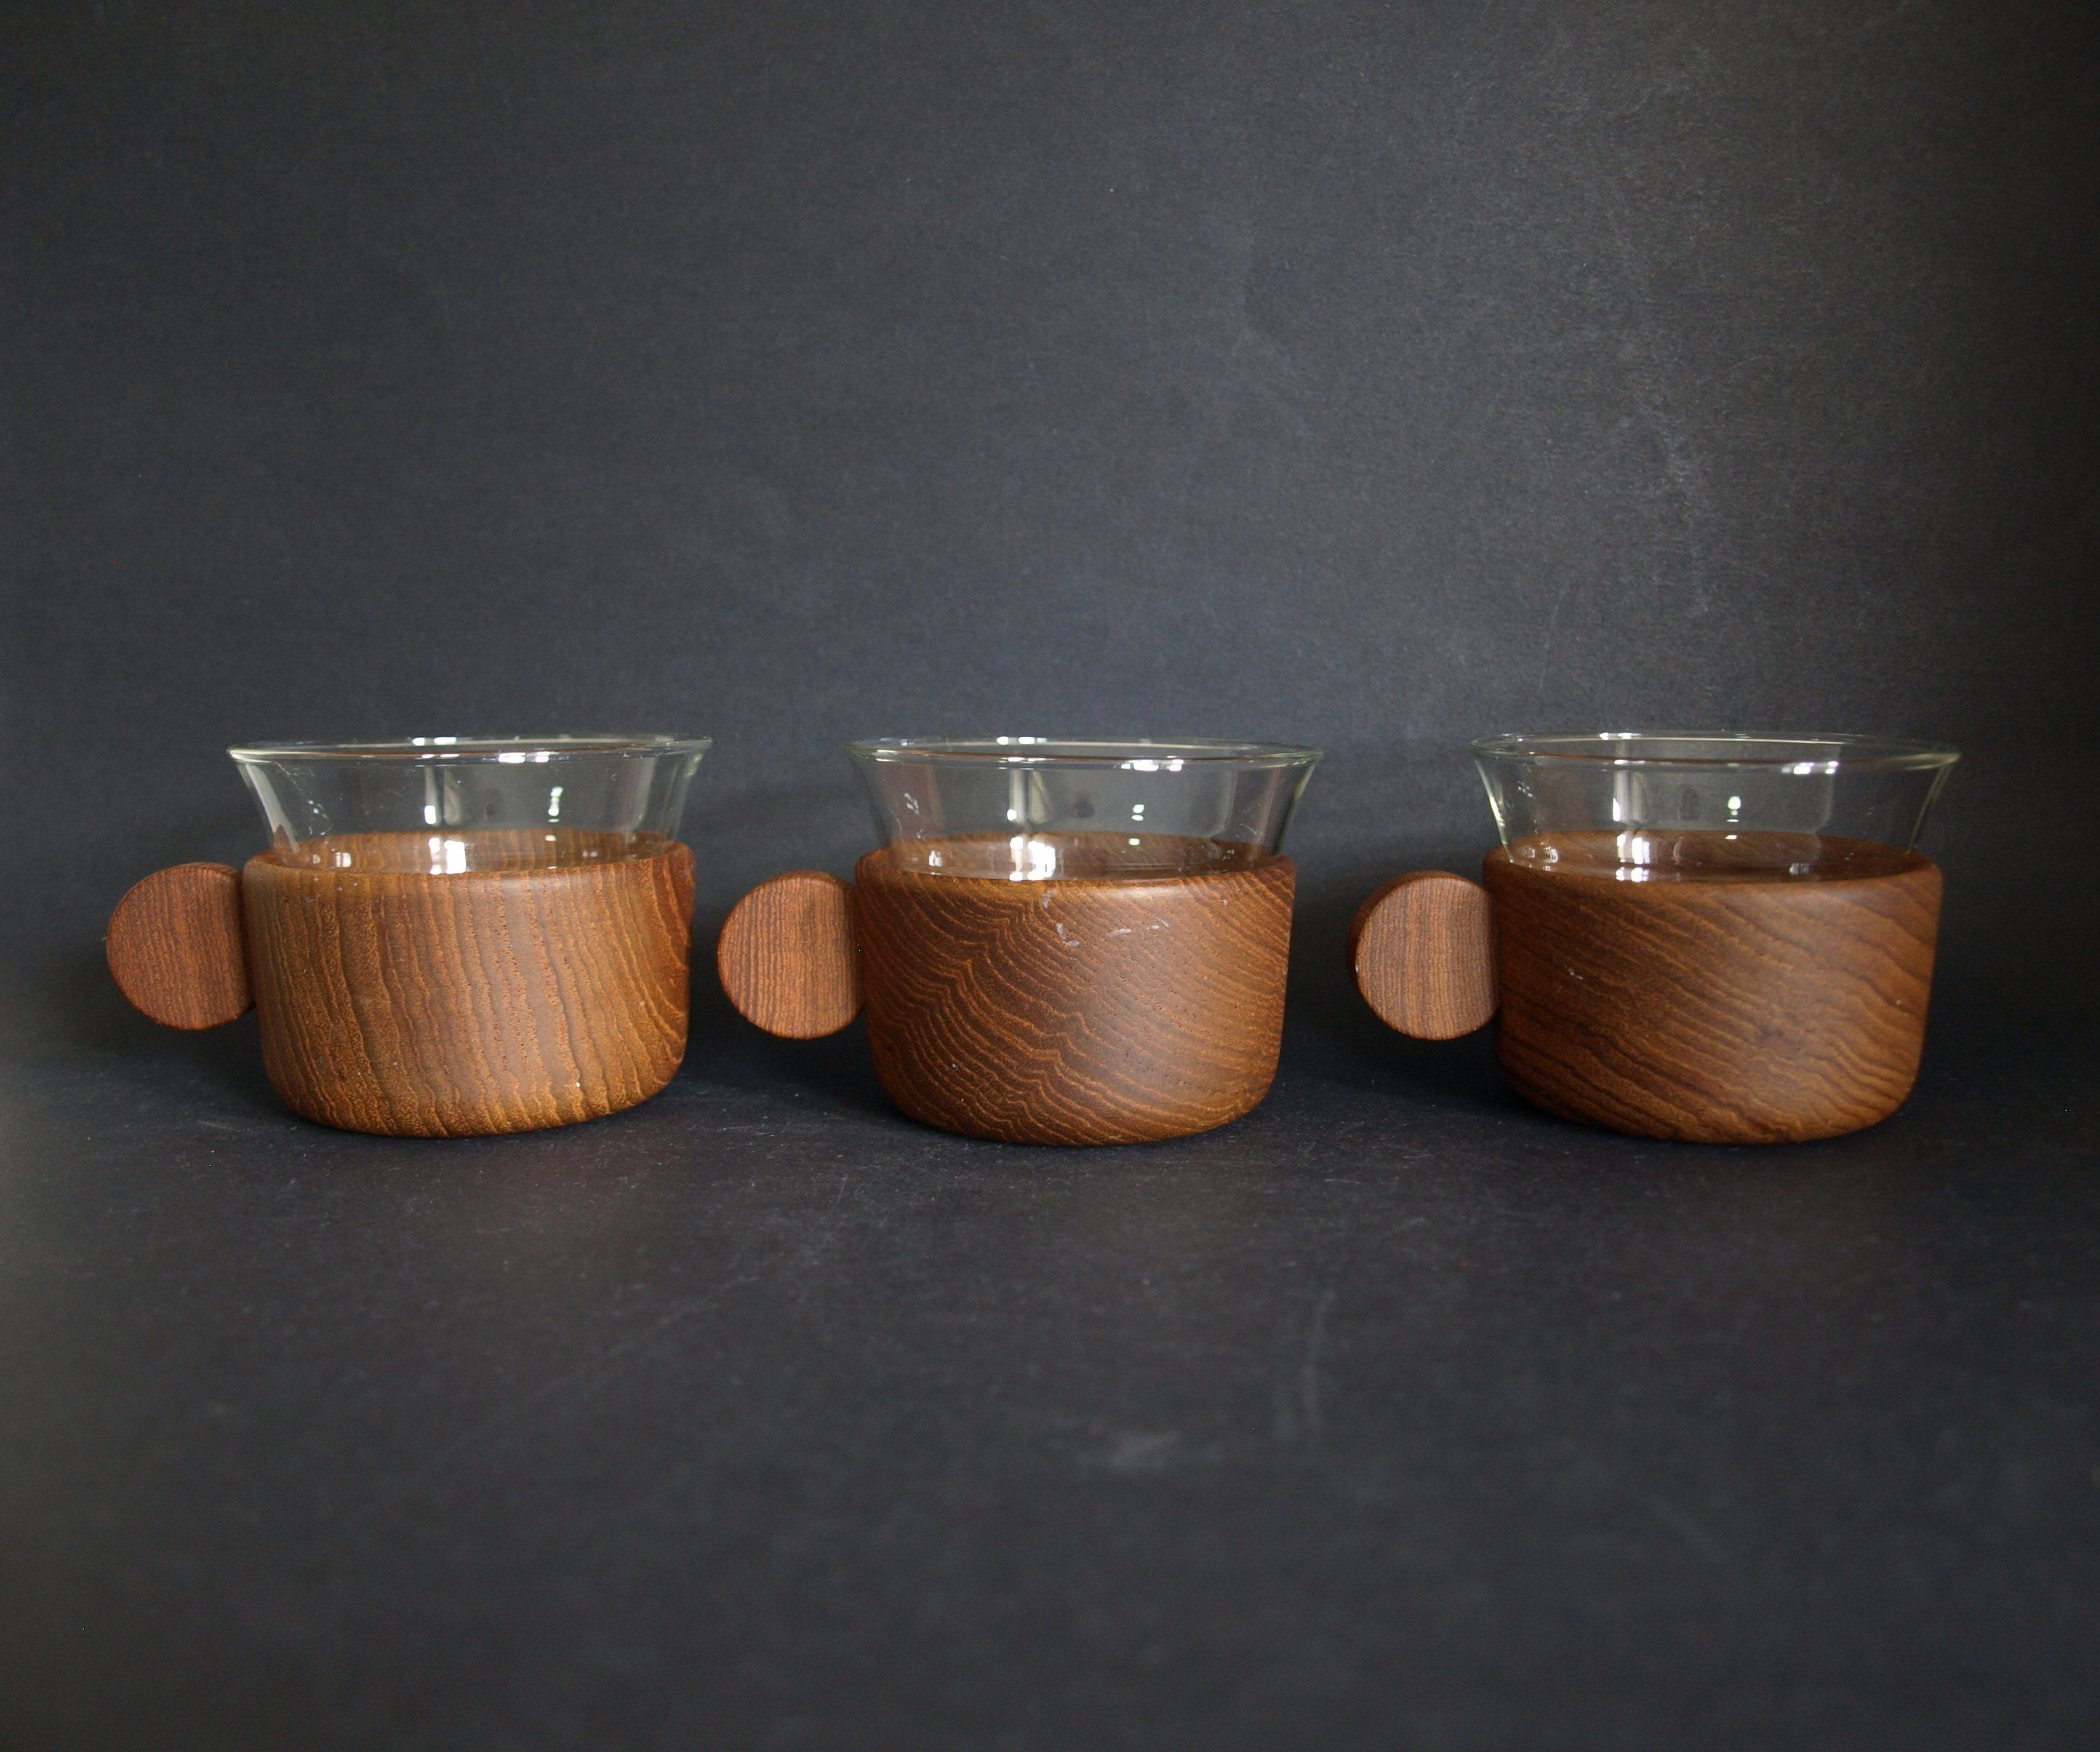 Schott Mainz Jena Glas Mod Wooden Glass Cups Mid Century Modern Shot Glasses Glass Cup Schott